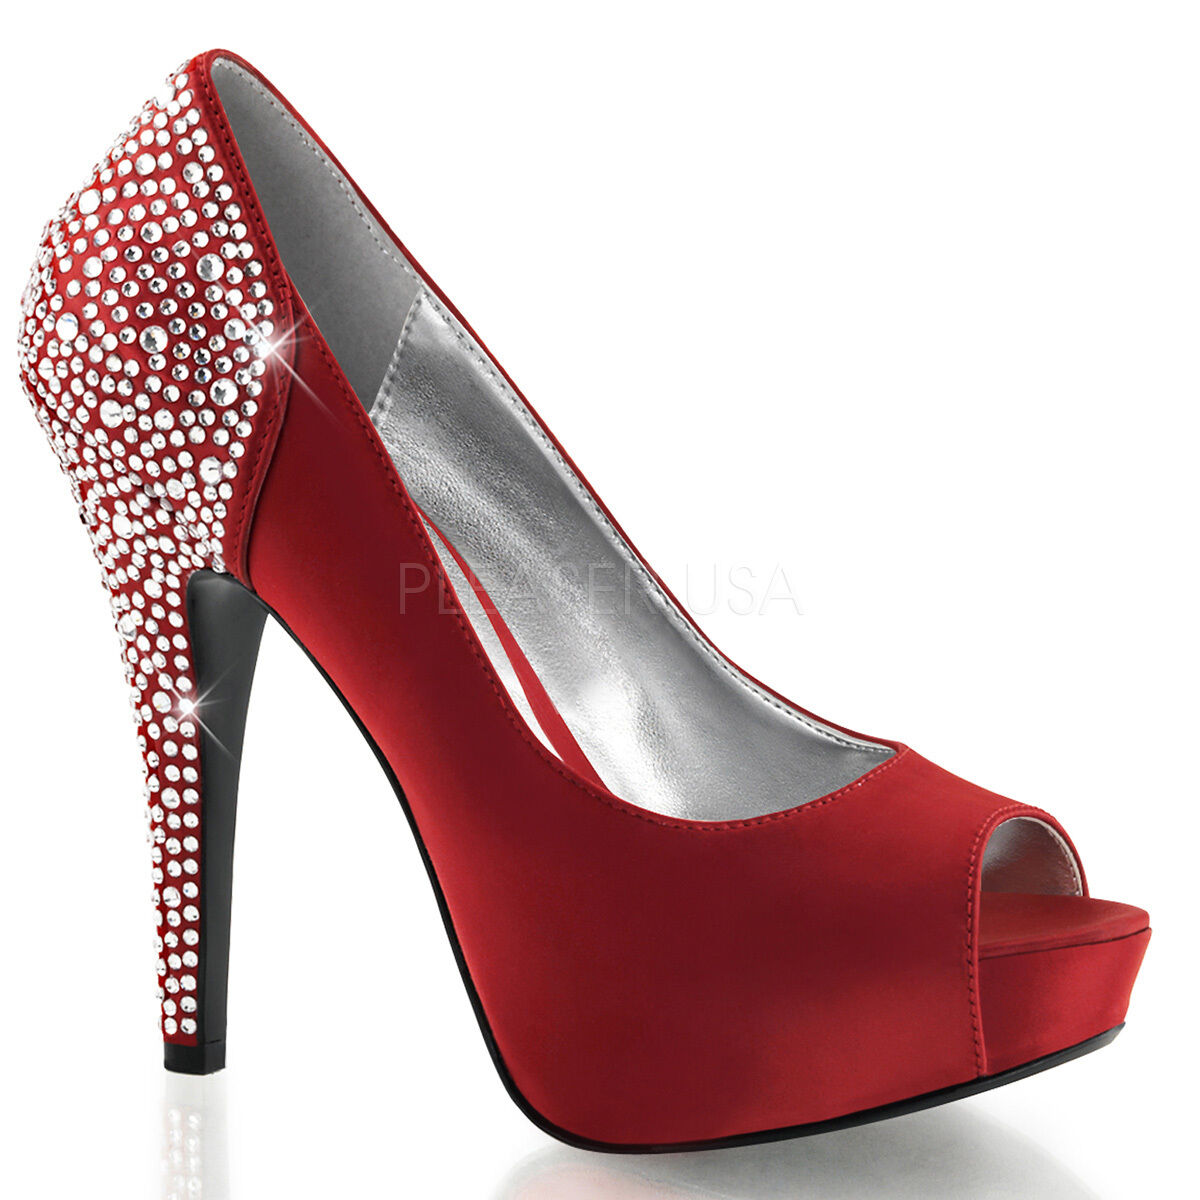 PLEASER Sexy red Red Satin Satin Satin 5  Heels Pumps Platform Rhinestone Evening shoes 3d6419